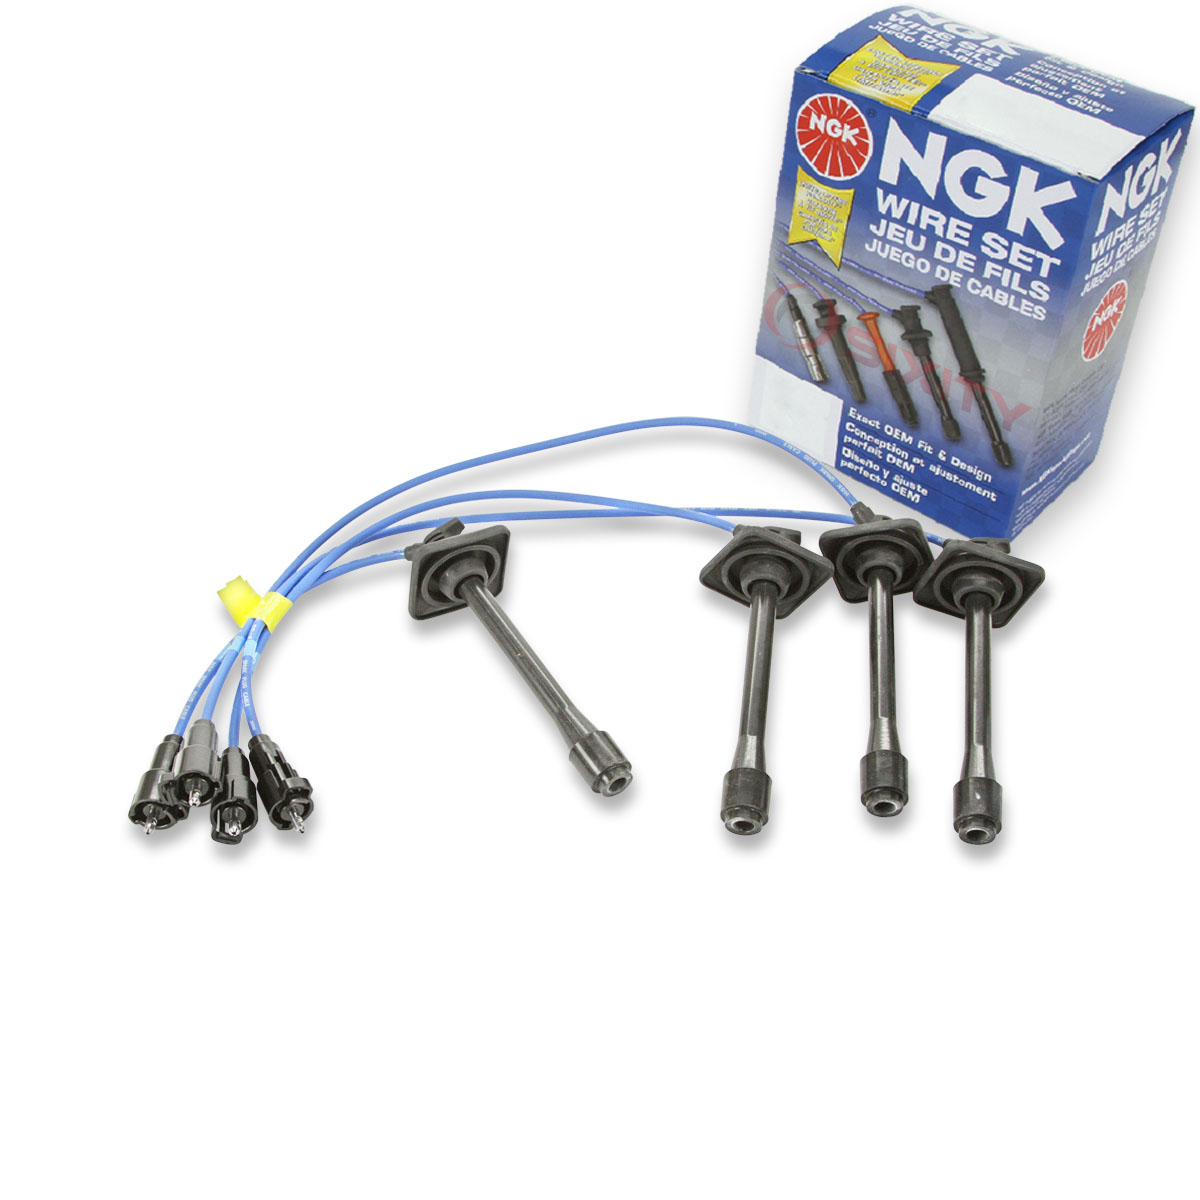 Set Of NGK Wires And 4 Platinum Spark Plugs For 99-01 Toyota Solara 2.2L DOHC